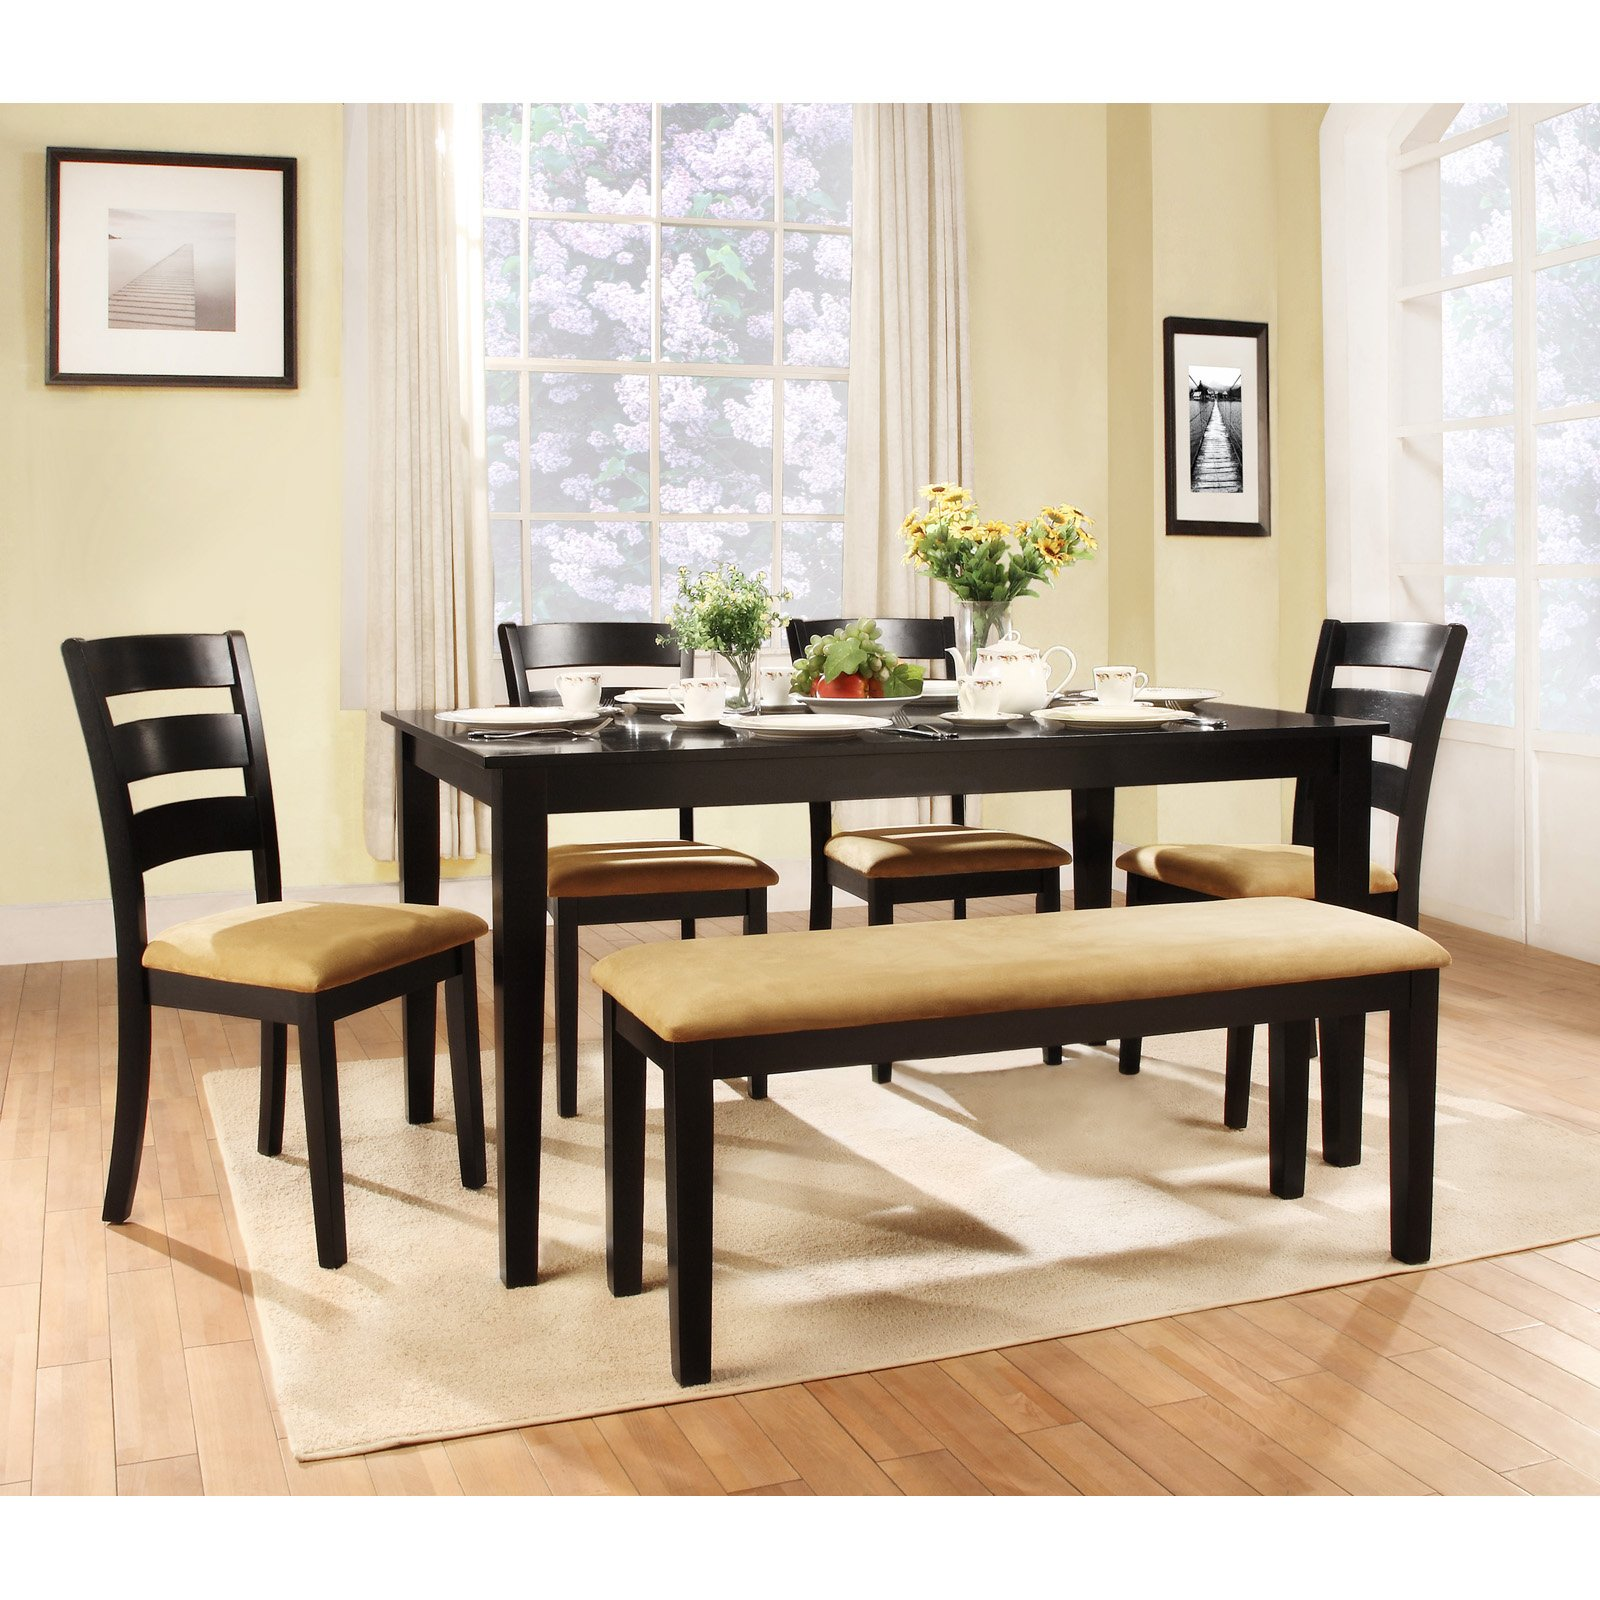 Dinette Bench Seating: Modern Bench Style Dining Table Set Ideas